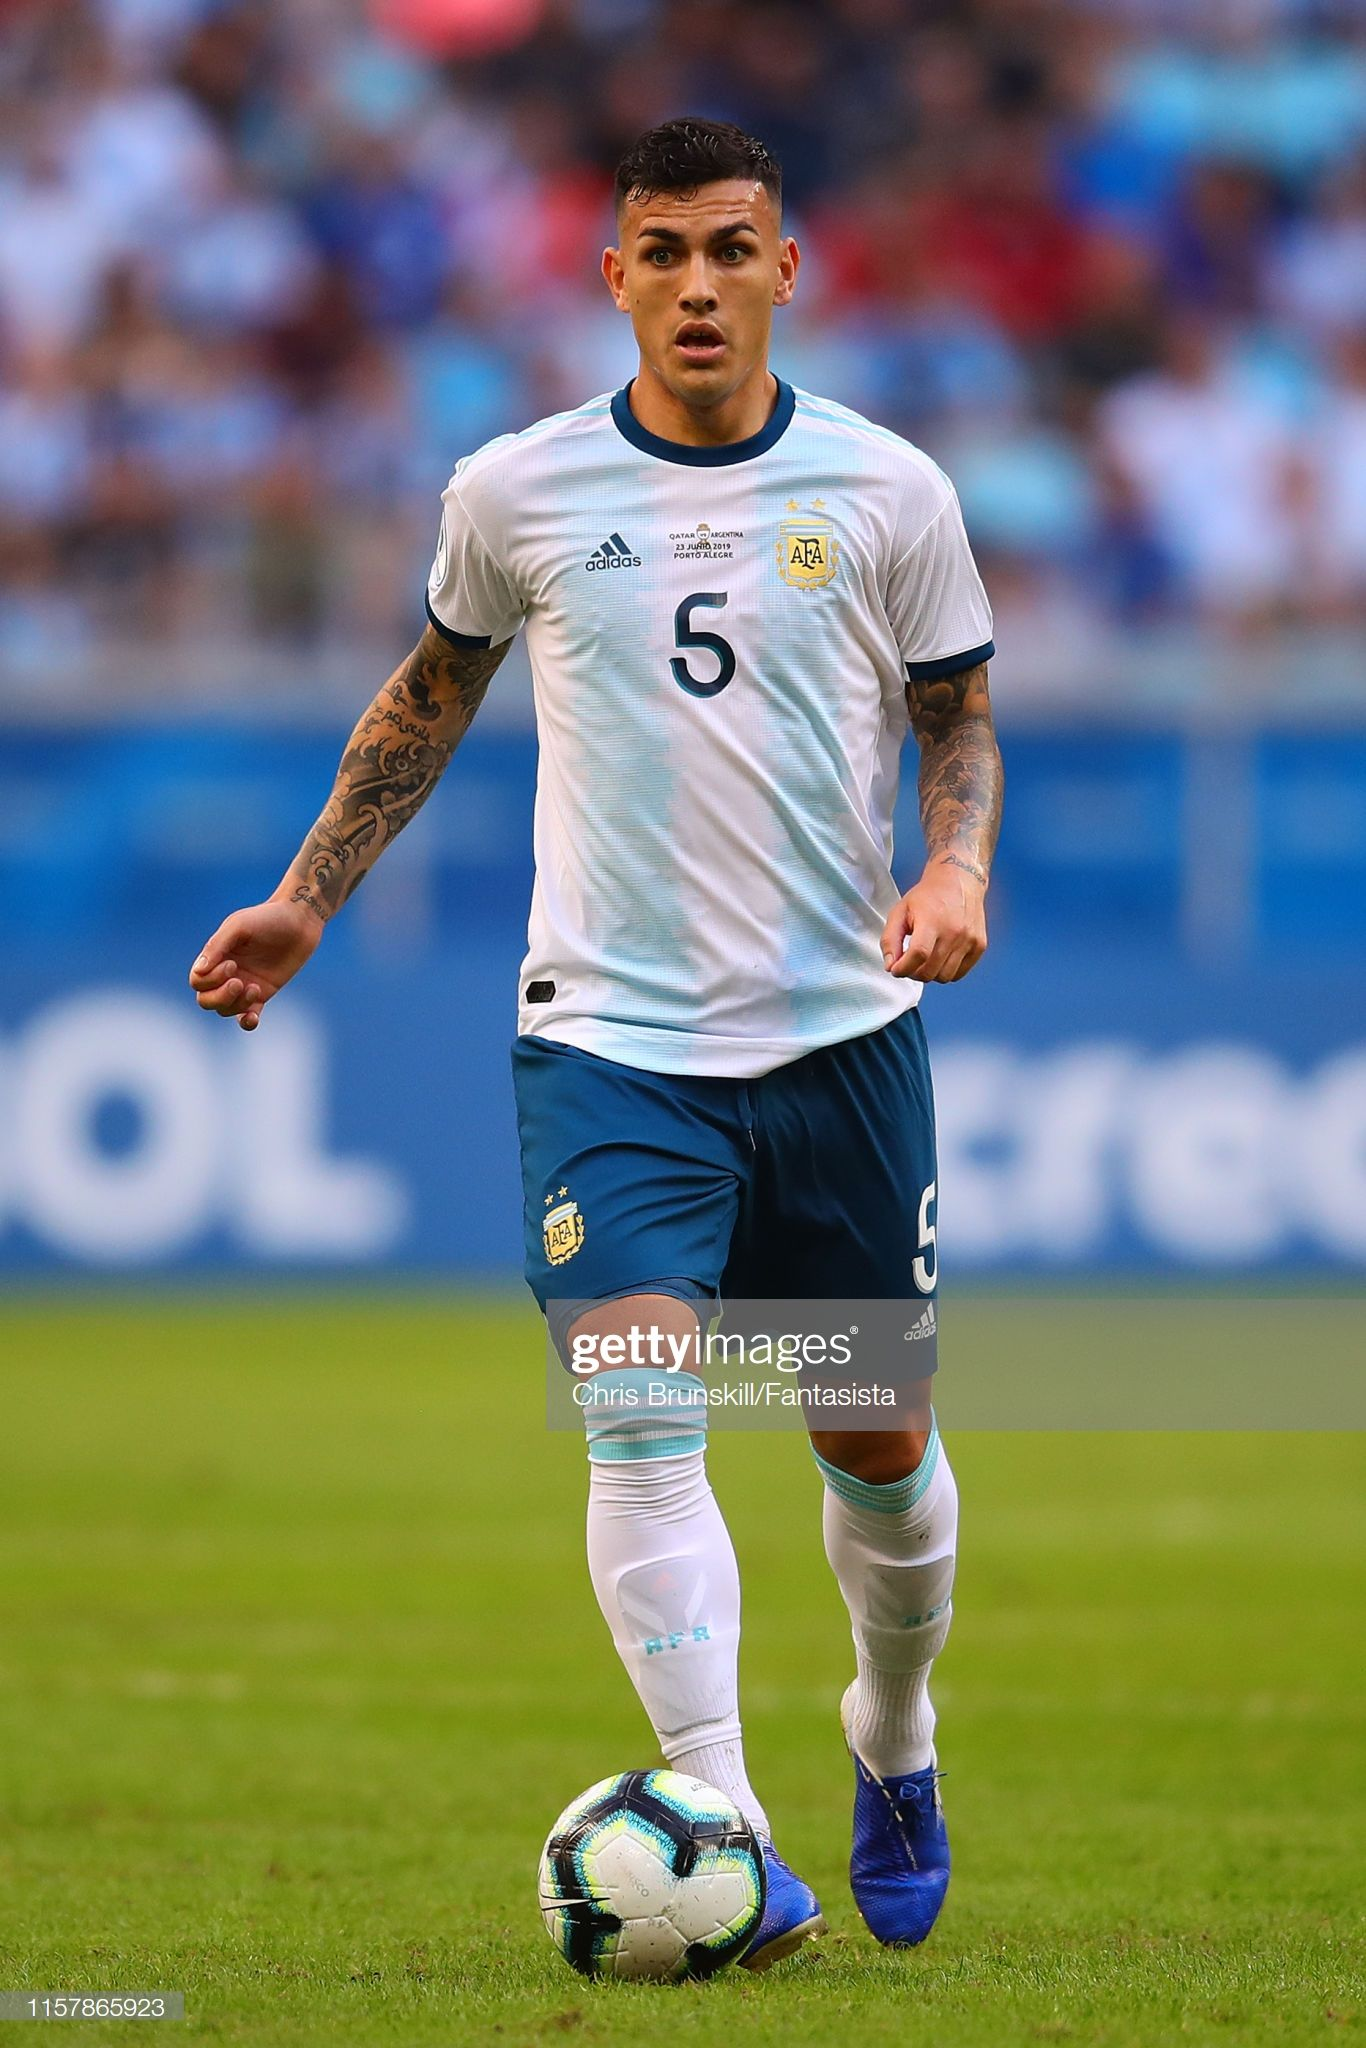 leandro paredes of argentina in action during the copa america brazil soccer world cup 2018 argentina soccer world